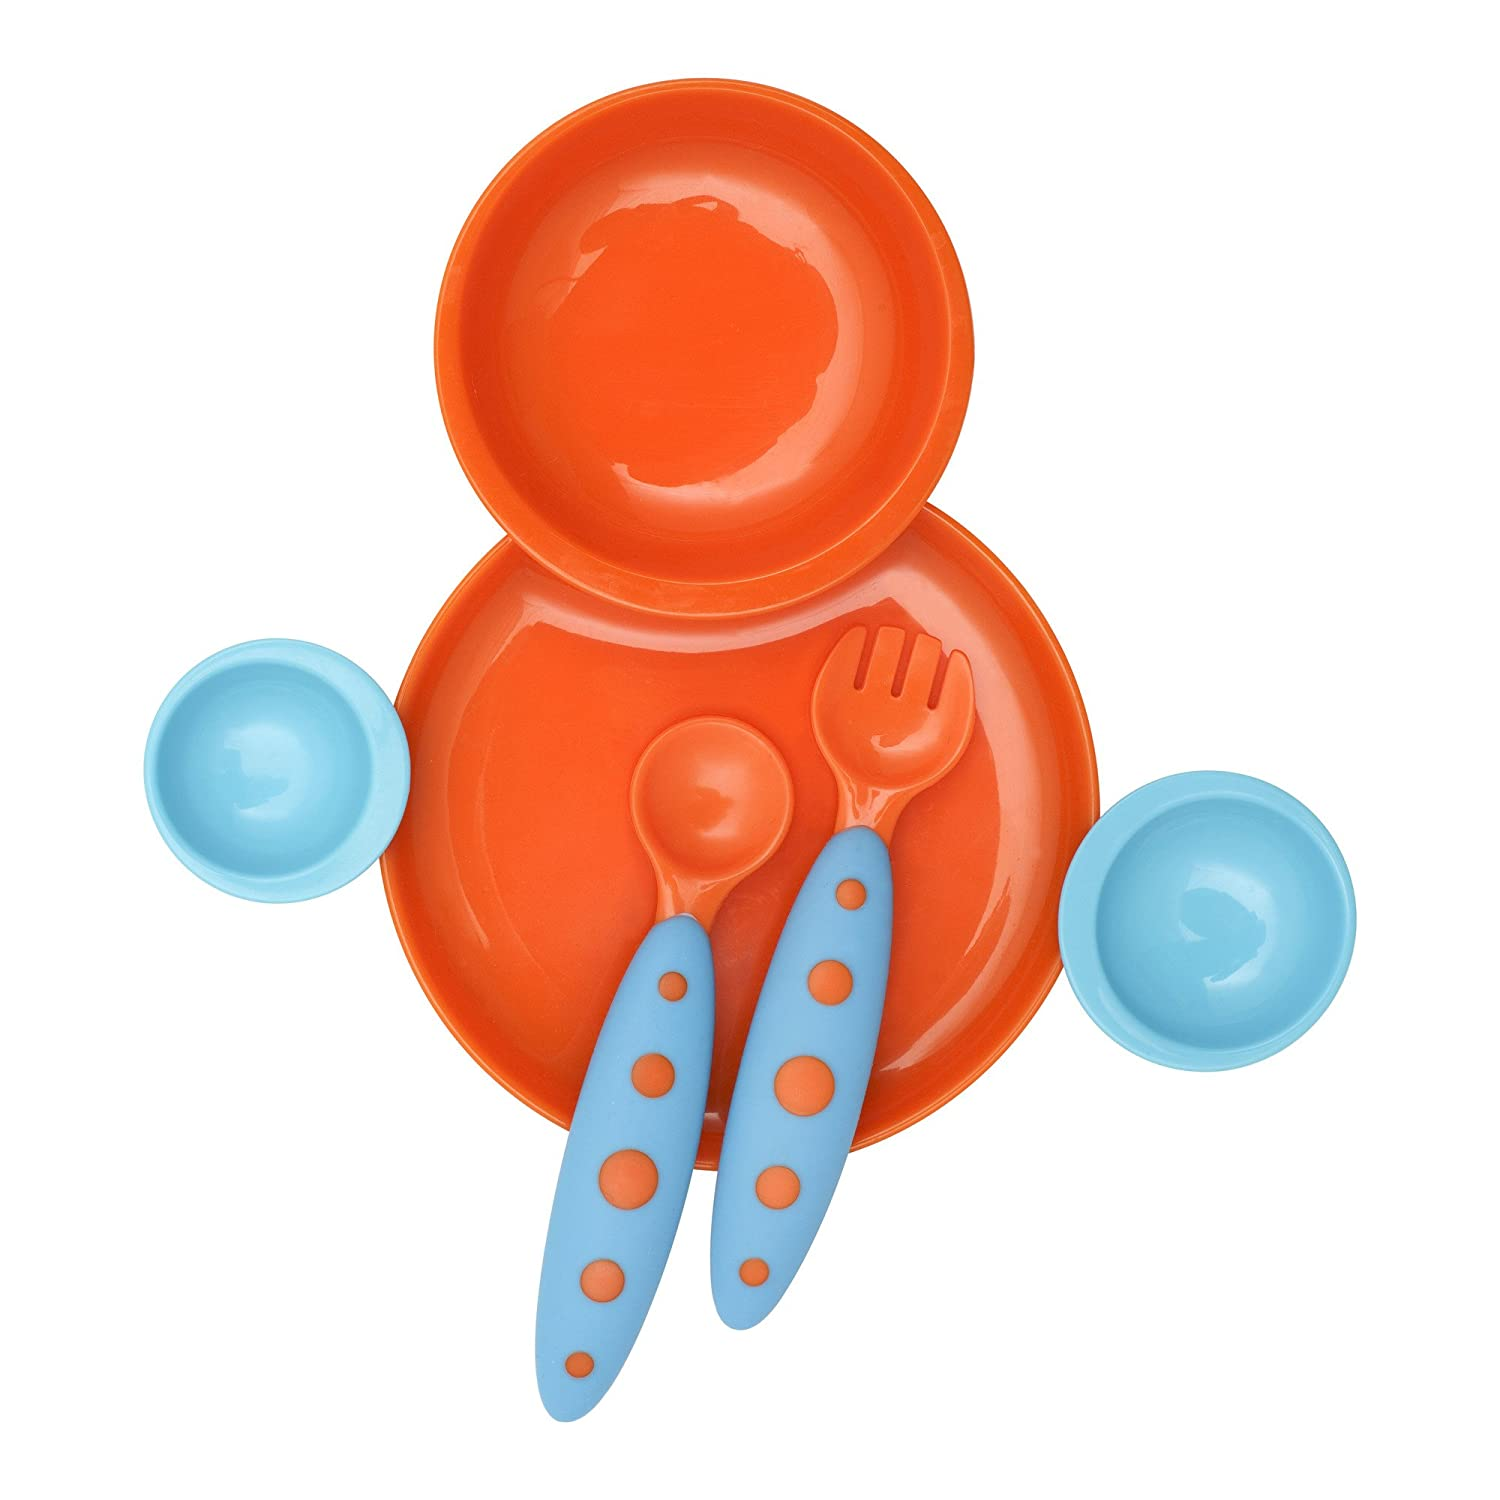 Groovy Interlocking Plate & Bowl with Modware TOMY 247